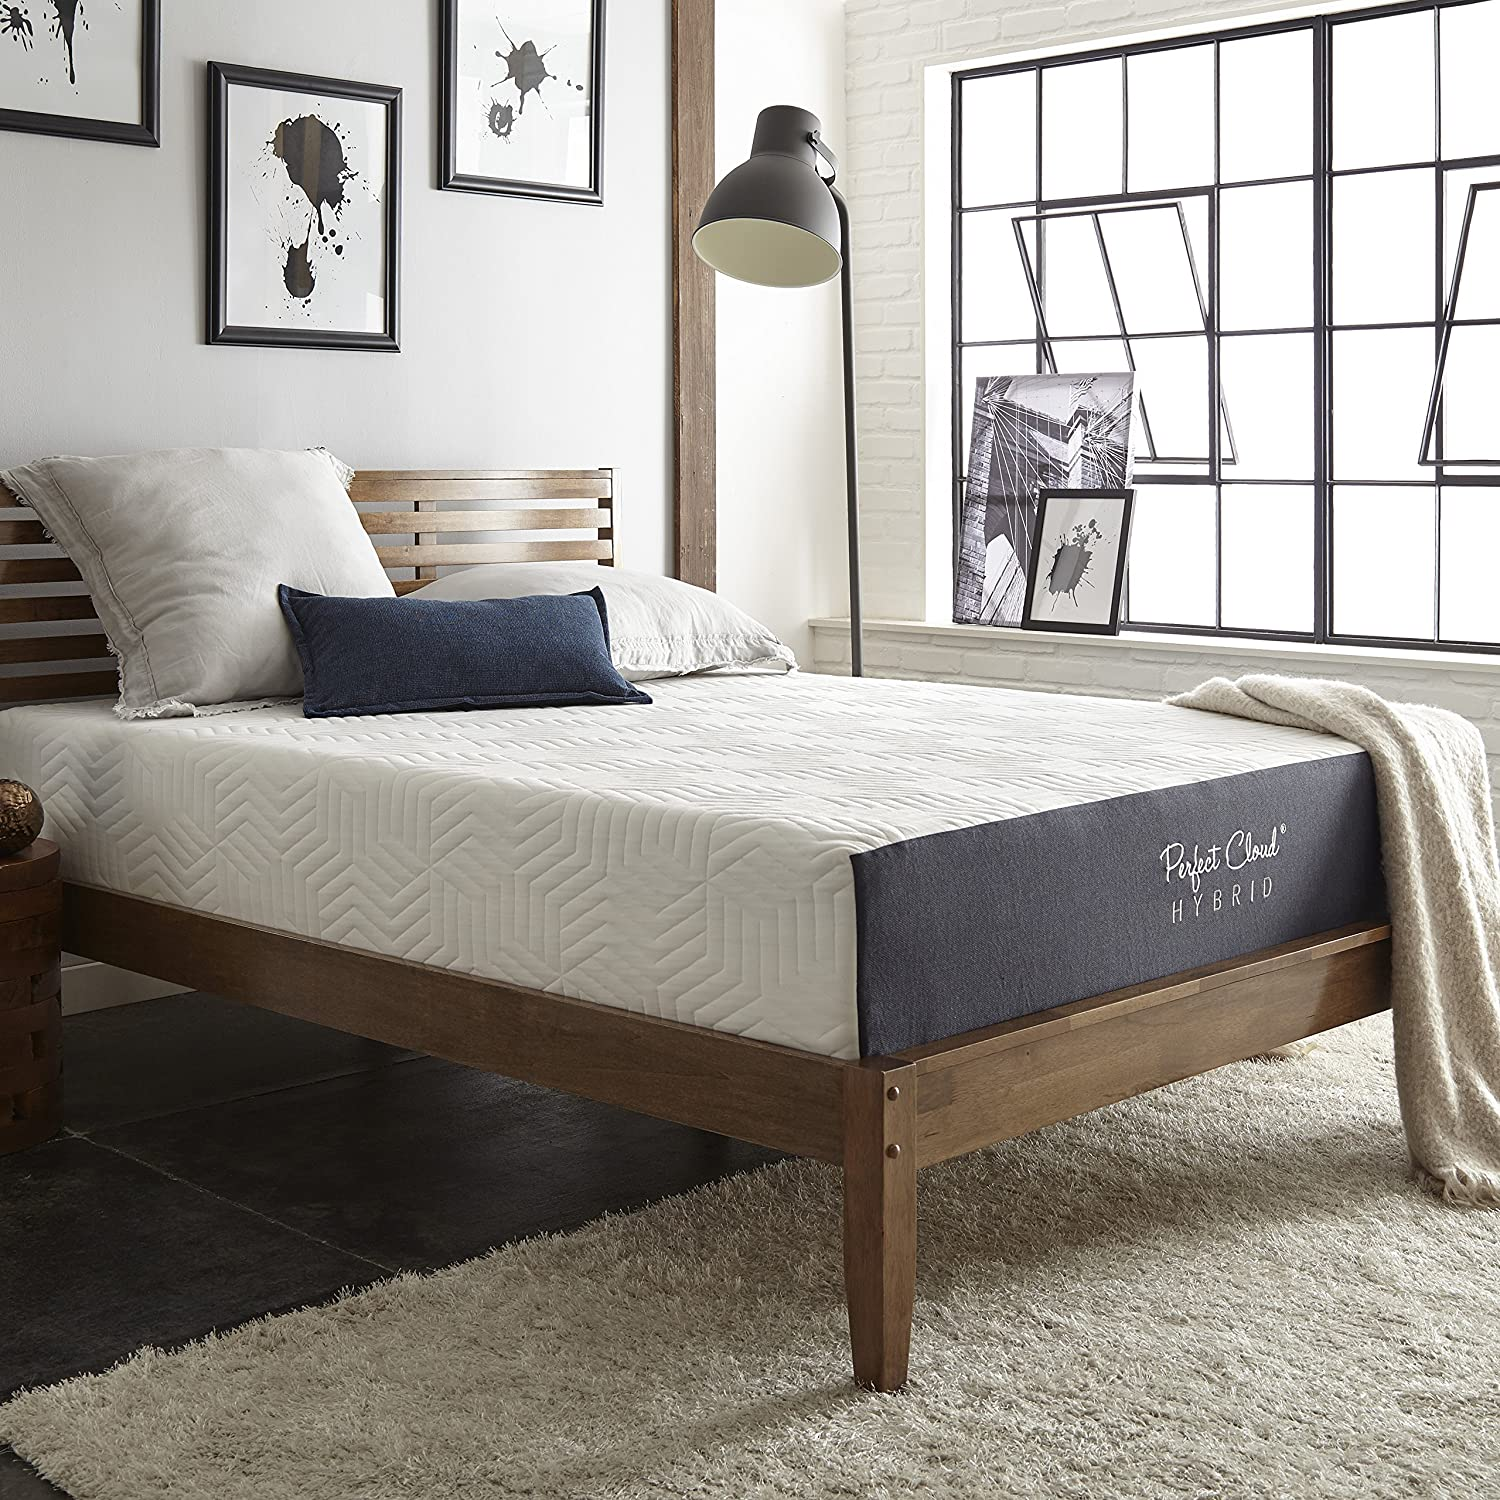 Best Soft Mattress 2019 Top 5 Rated Plush Beds Reviews